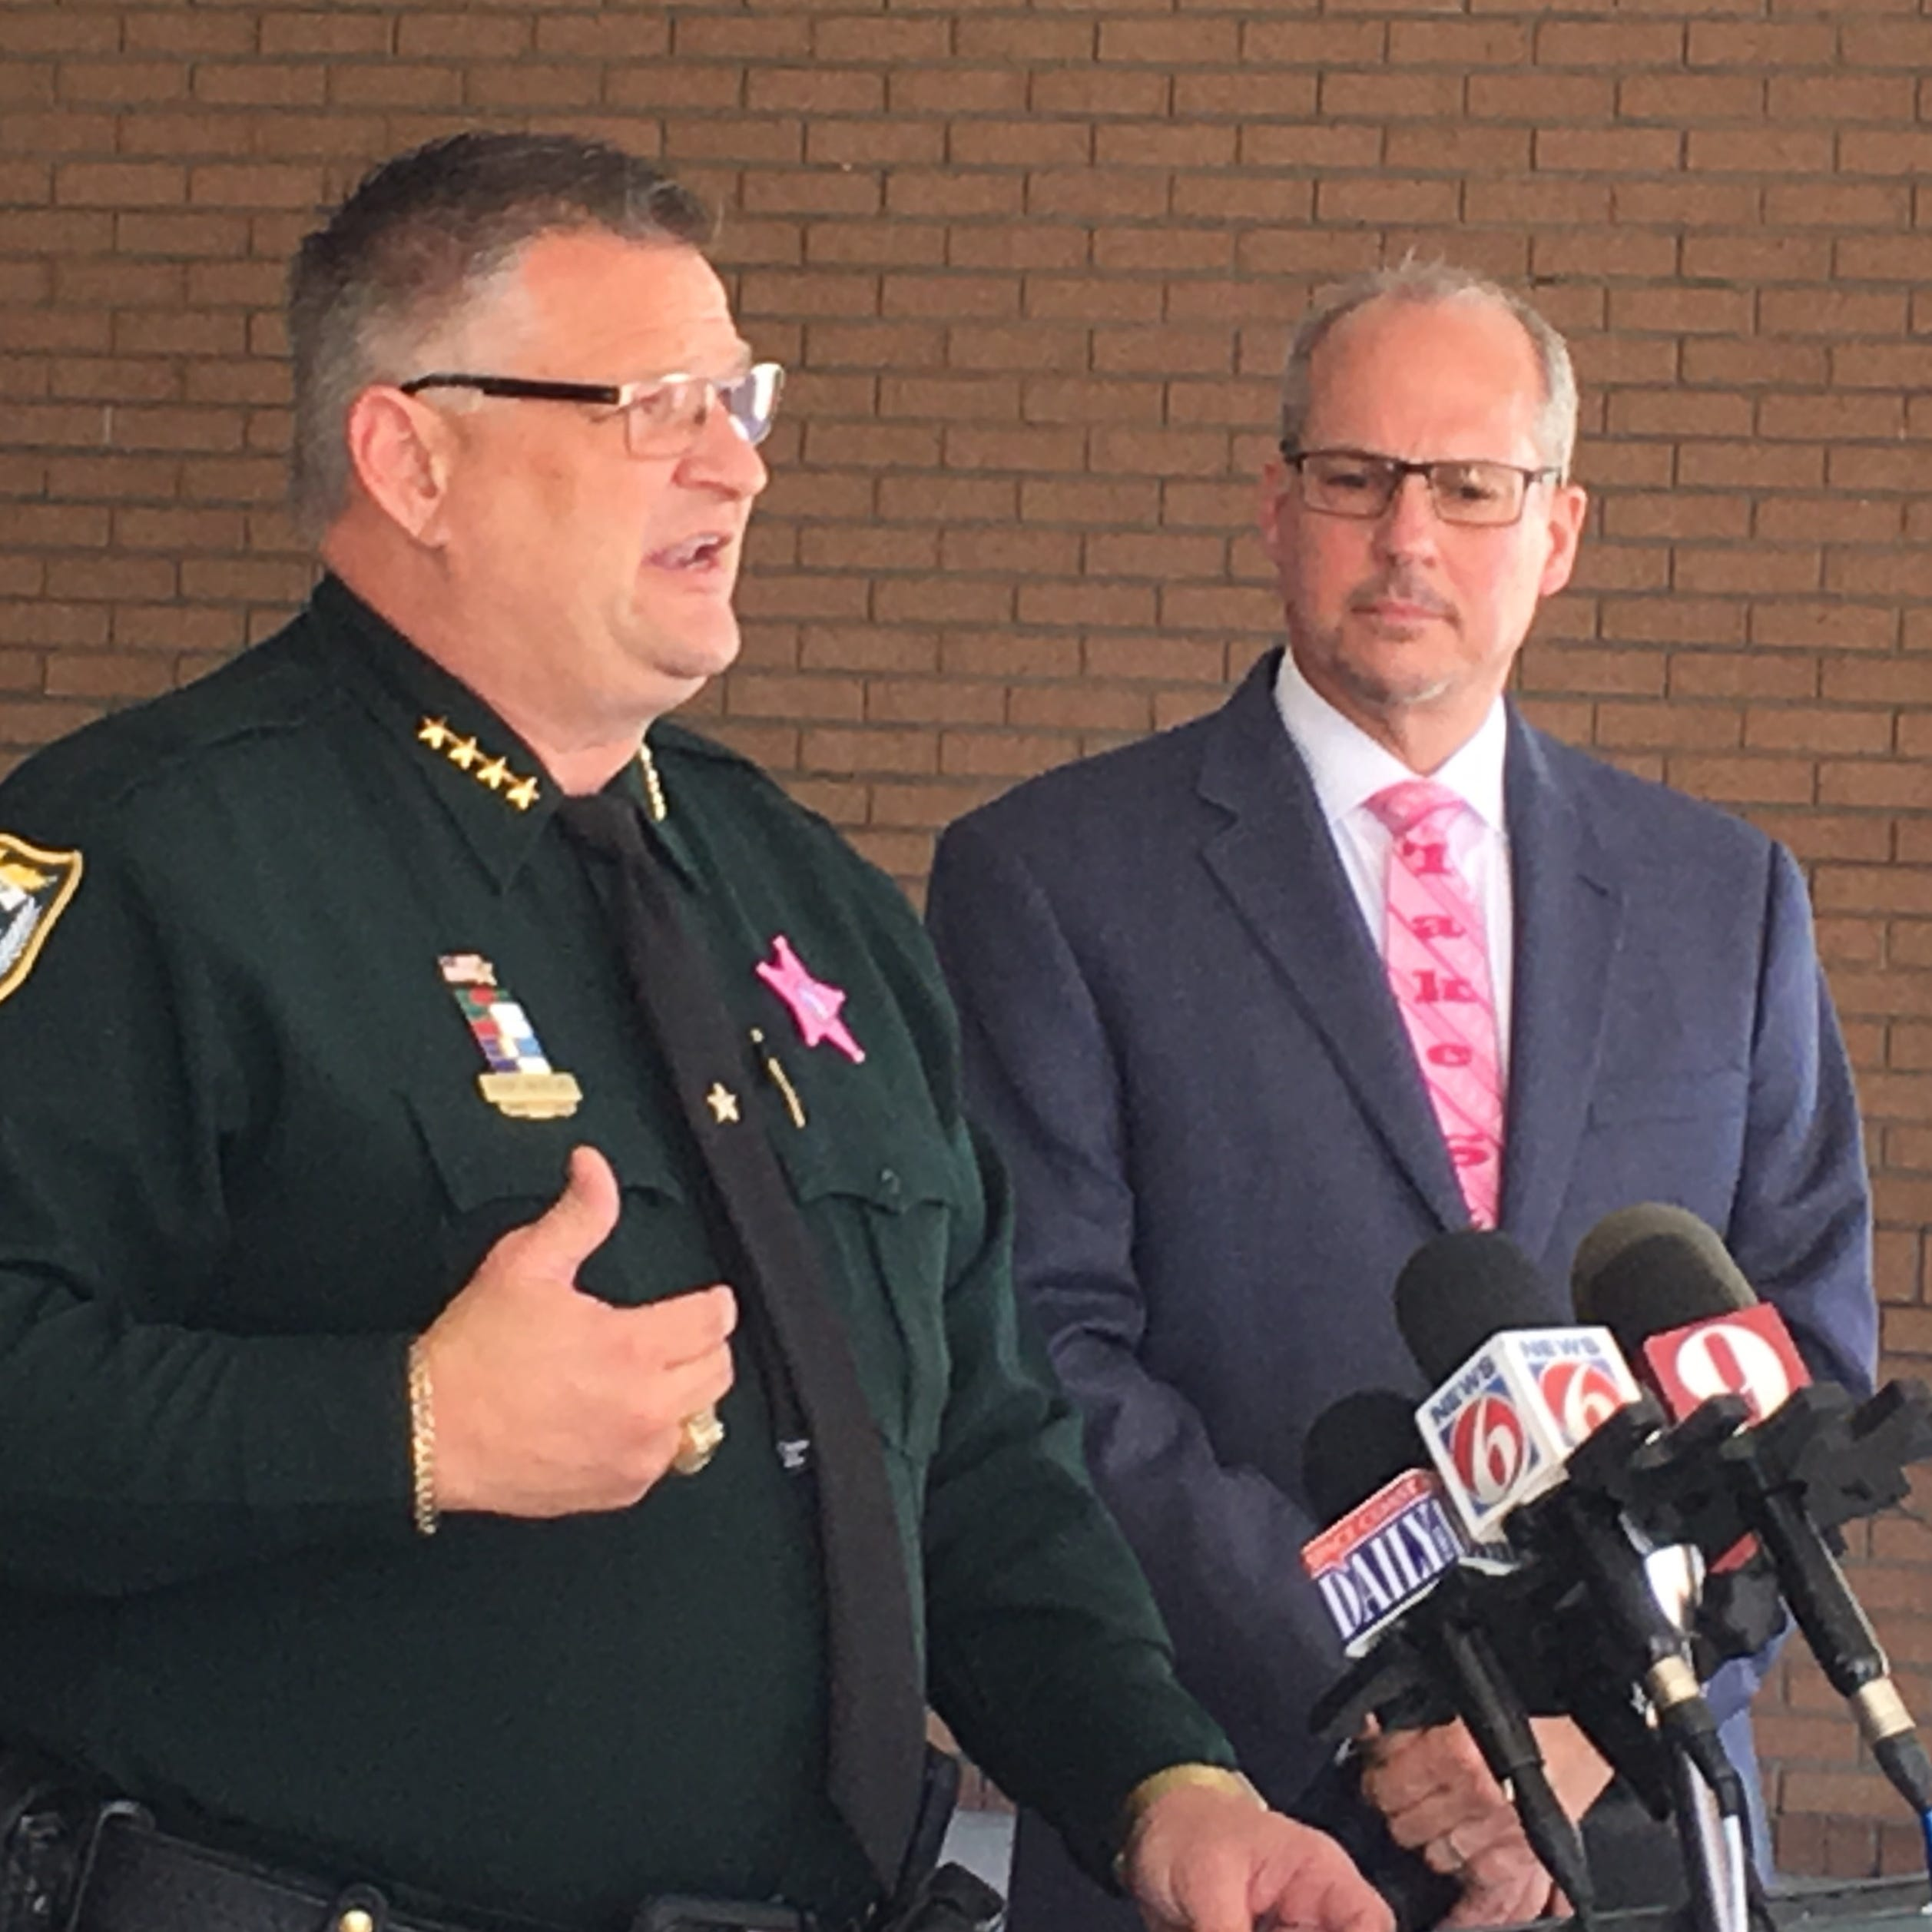 Armed security guards to be deployed at Brevard elementary schools next week, sheriff says